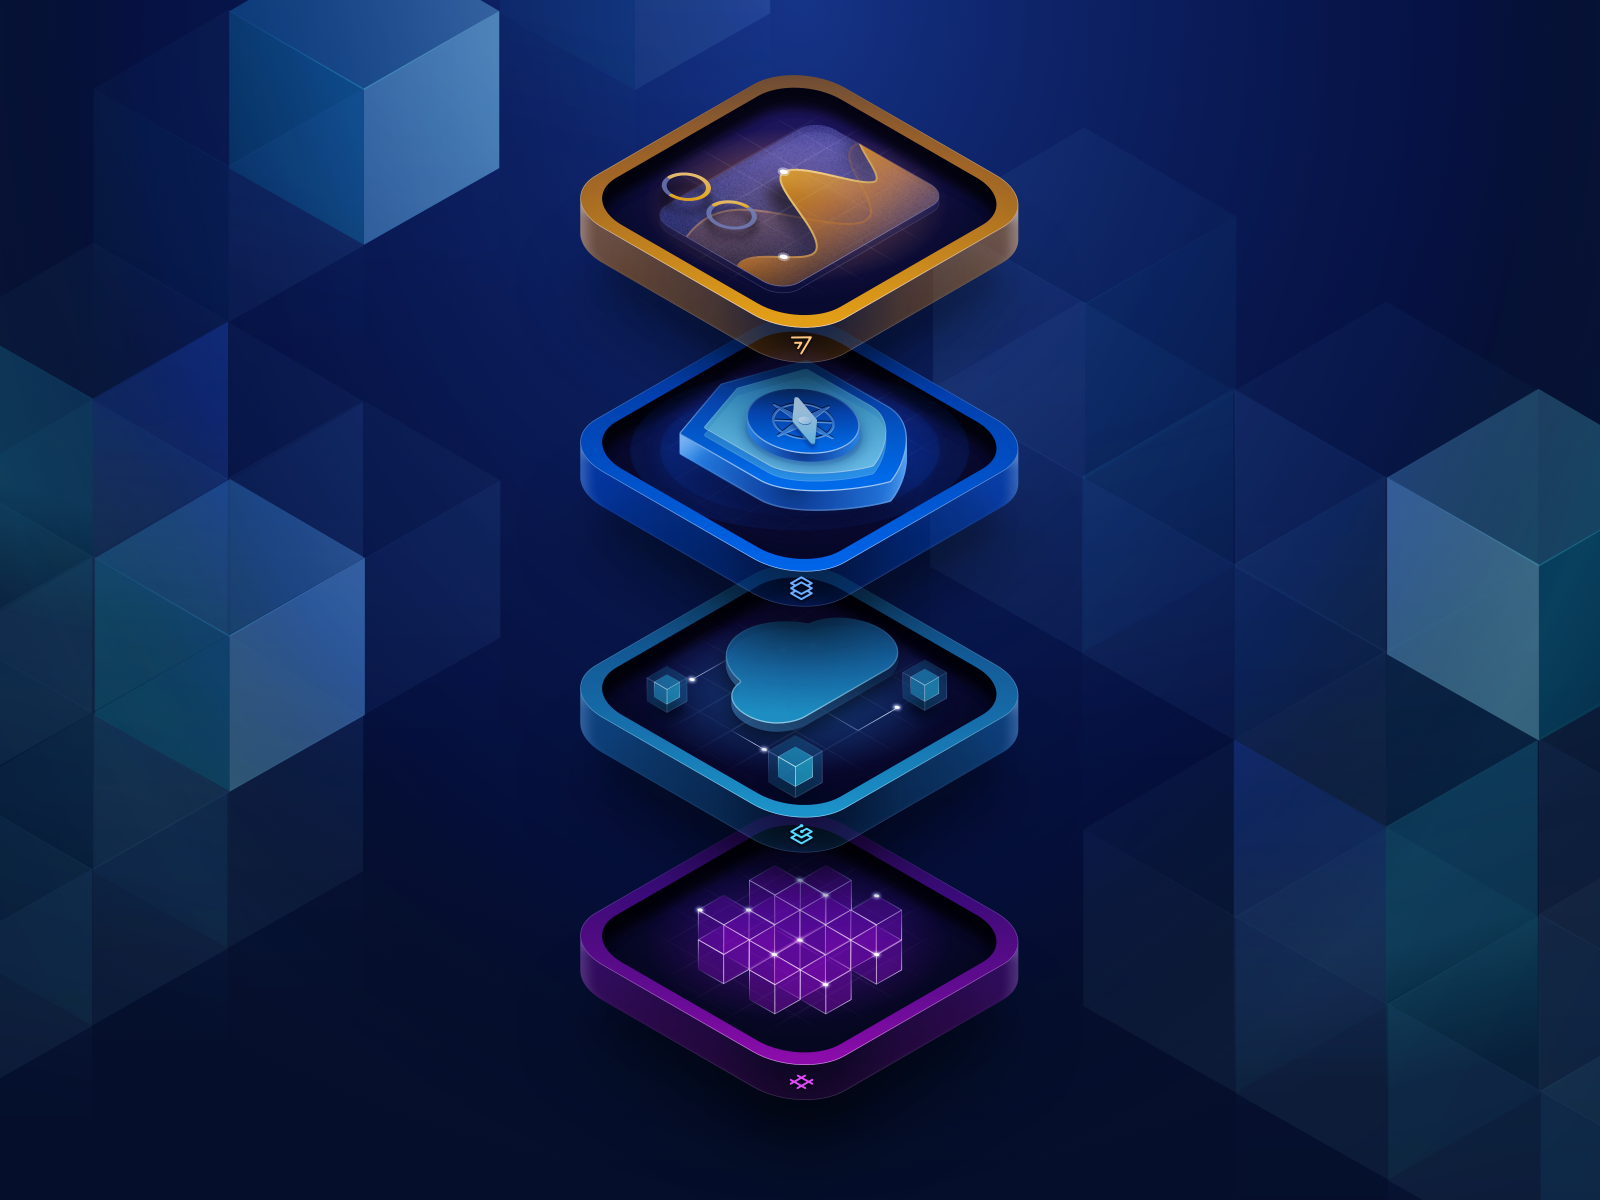 New Stack Graphic for TraefikLabs